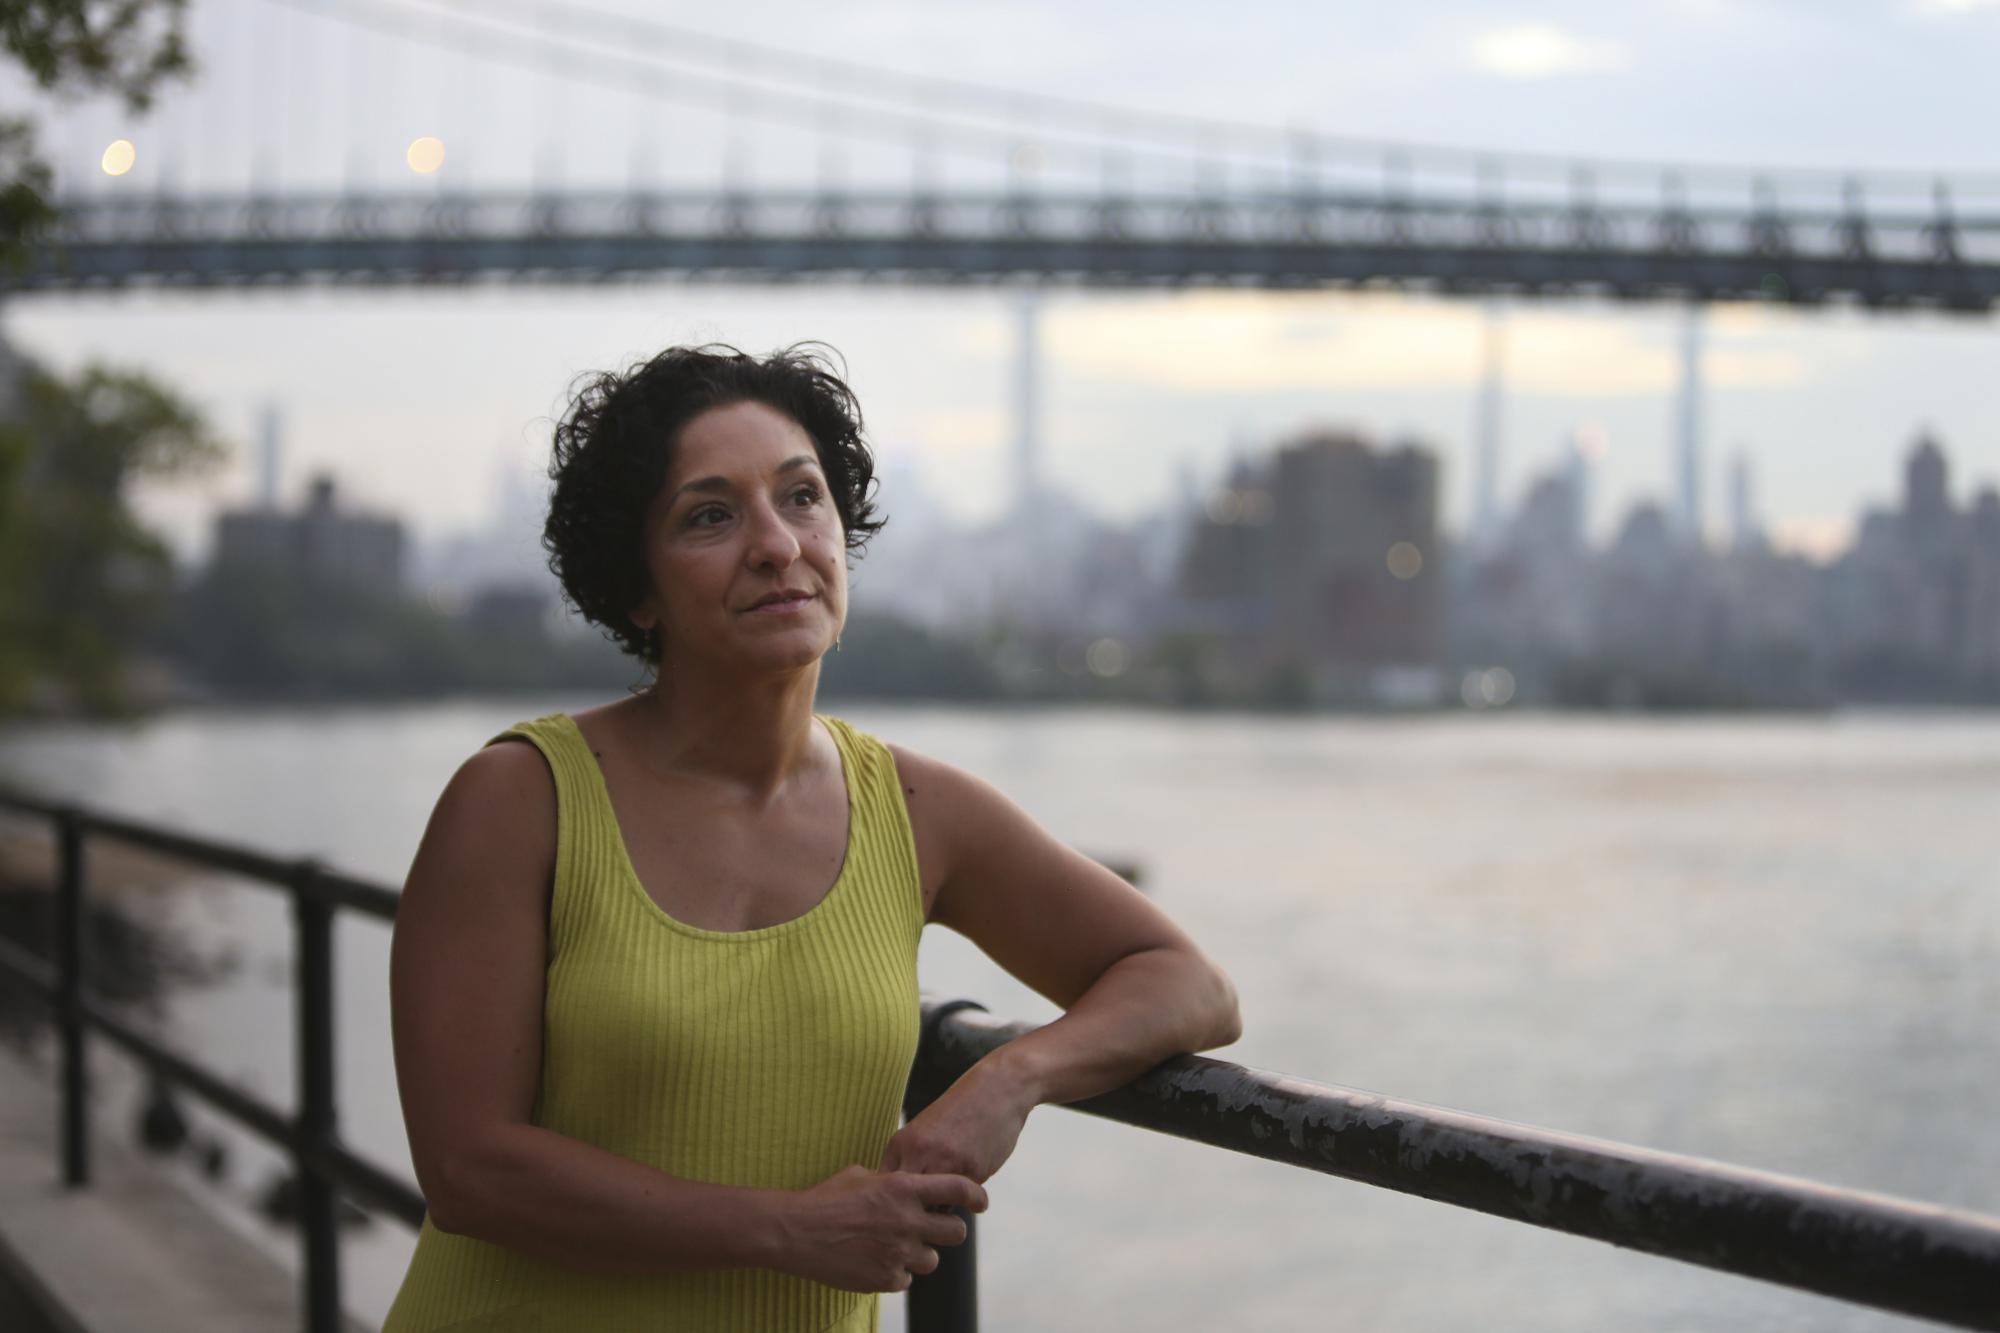 """Anthoula Katsimatides looks out over the East River from Astoria Park on Monday, Aug. 30, 2021, in the Queens borough of New York. Her brother John Katsimatides, who worked on the 104th floor of the World Trade Center's north tower, was killed in the Sept. 11, 2001 attacks. """"When we discovered ... that St. Nicholas was also lost, we thought that there was some kind of a message there, that the victims did not die alone,"""" Anthoula  said. """"I remember my mom saying that ... John and the other victims were being cradled by St. Nicholas."""" (AP Photo/Jessie Wardarski)"""